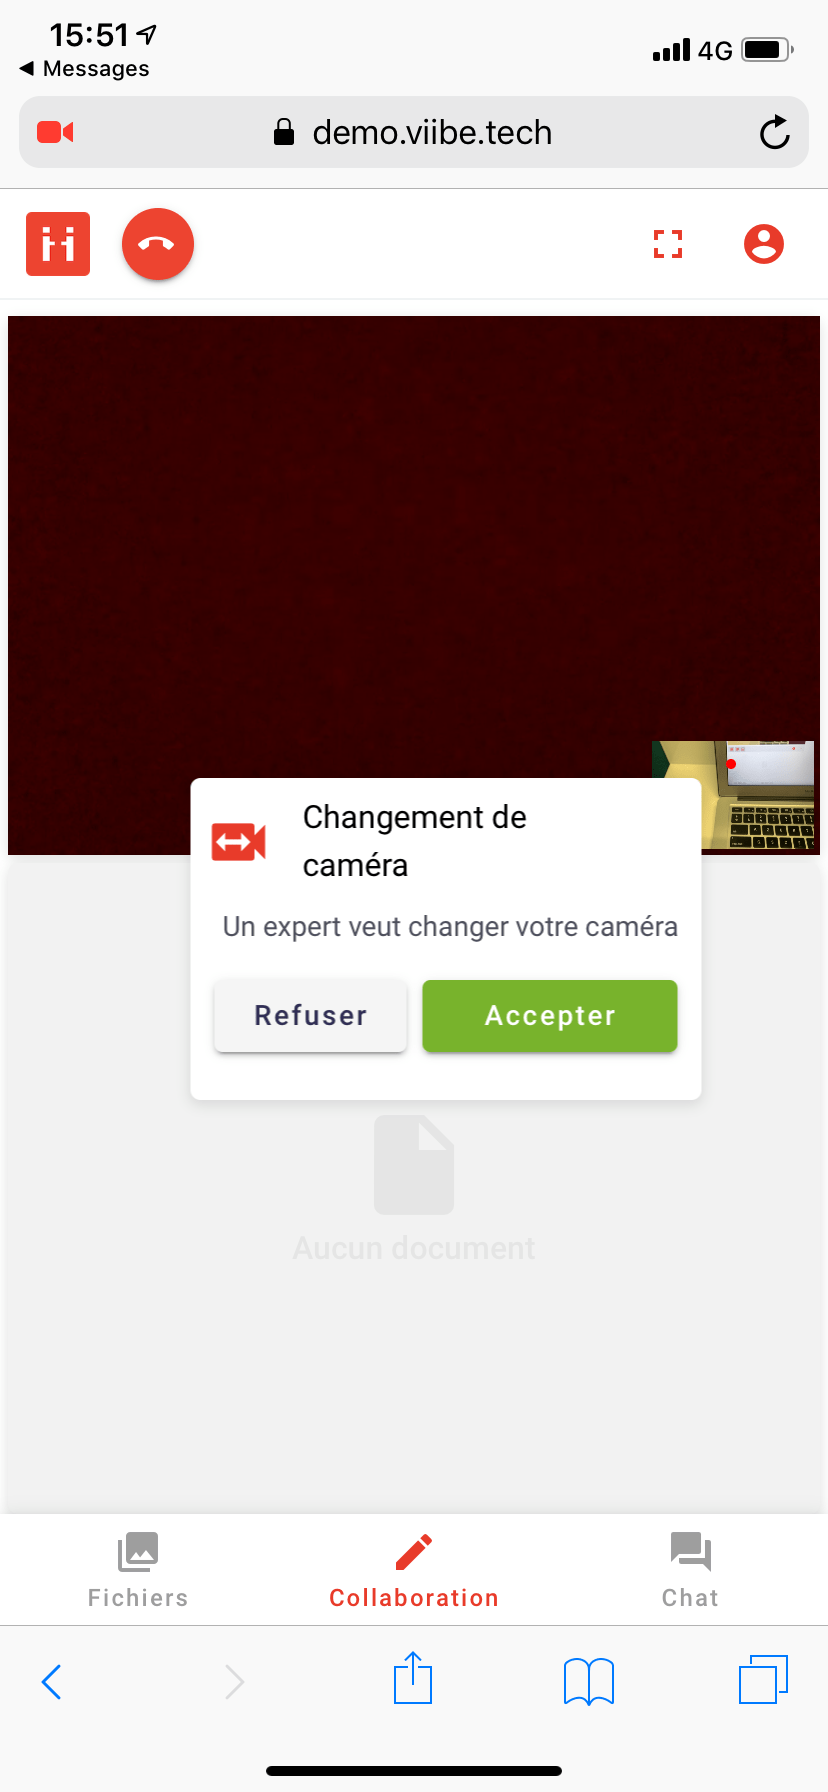 Other user must accept to switch cameras during the ViiBE call